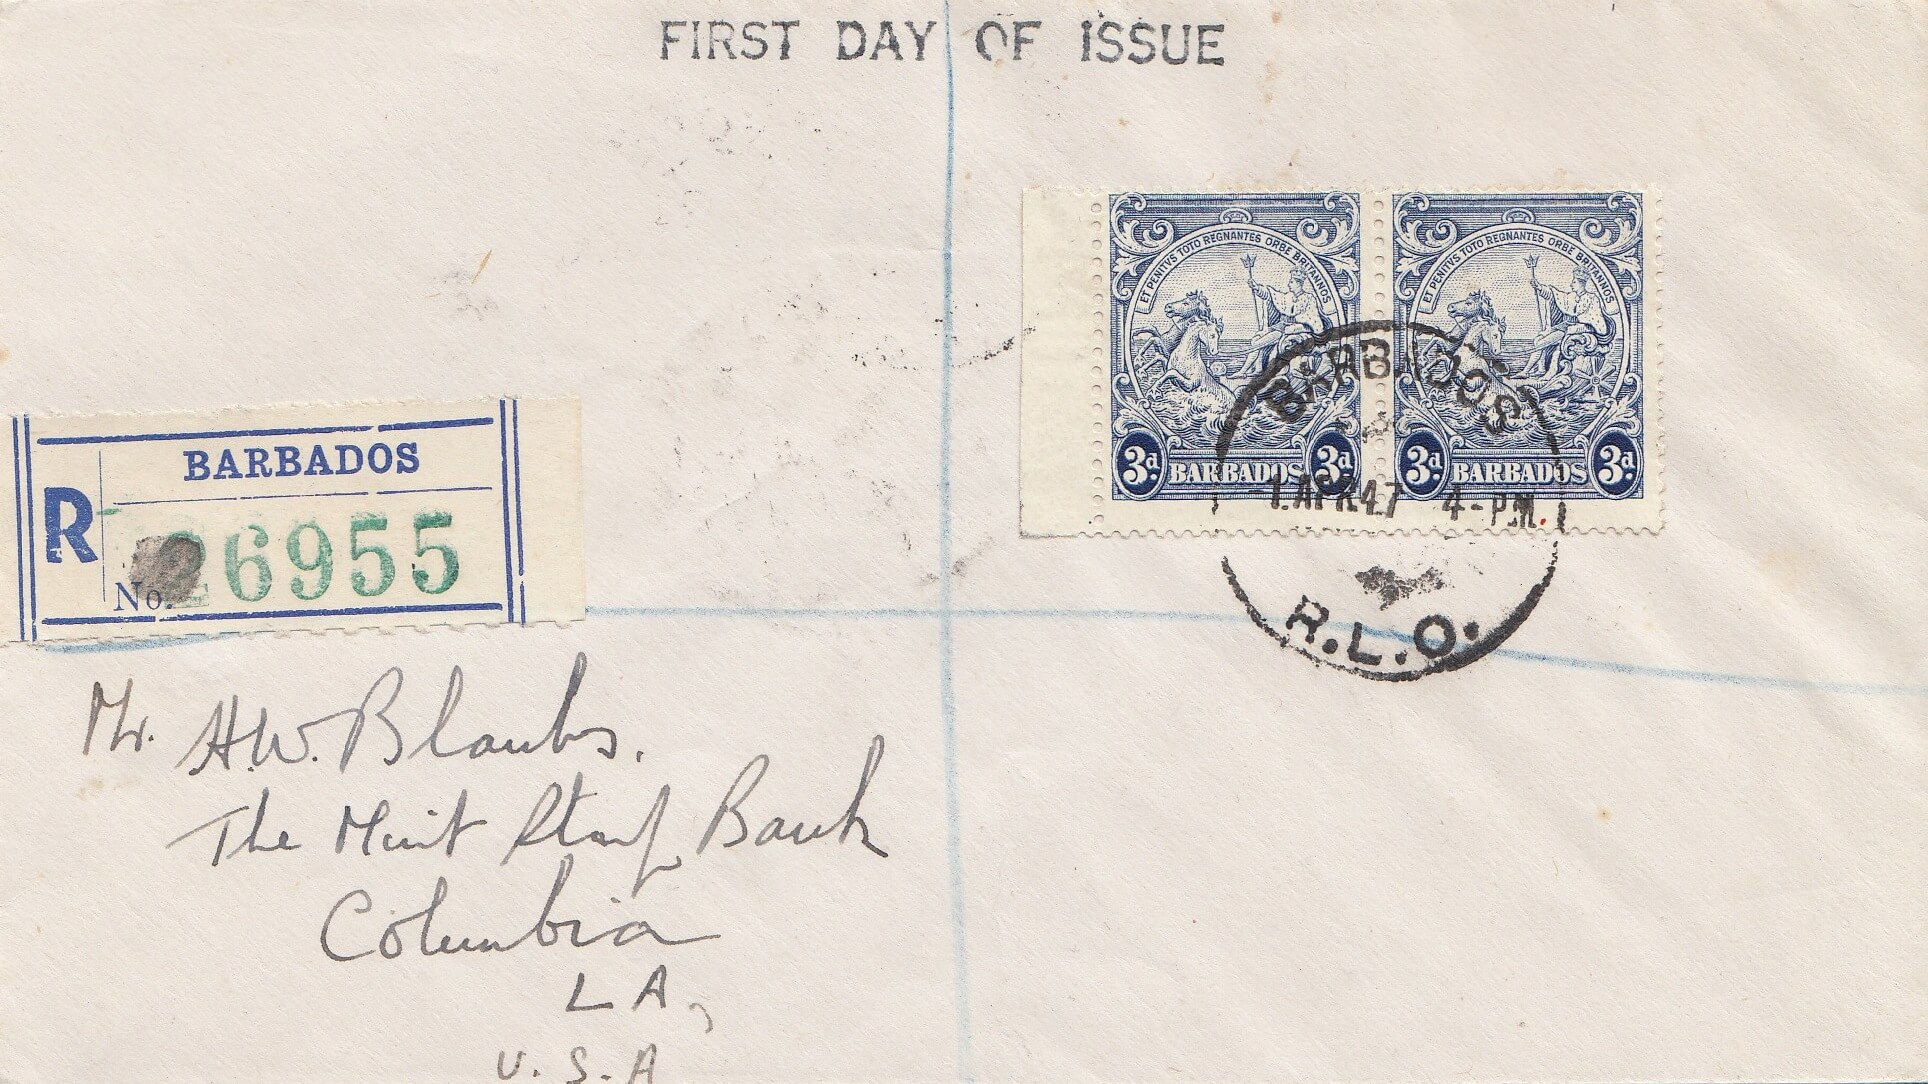 Barbados SG252c on First Day Cover